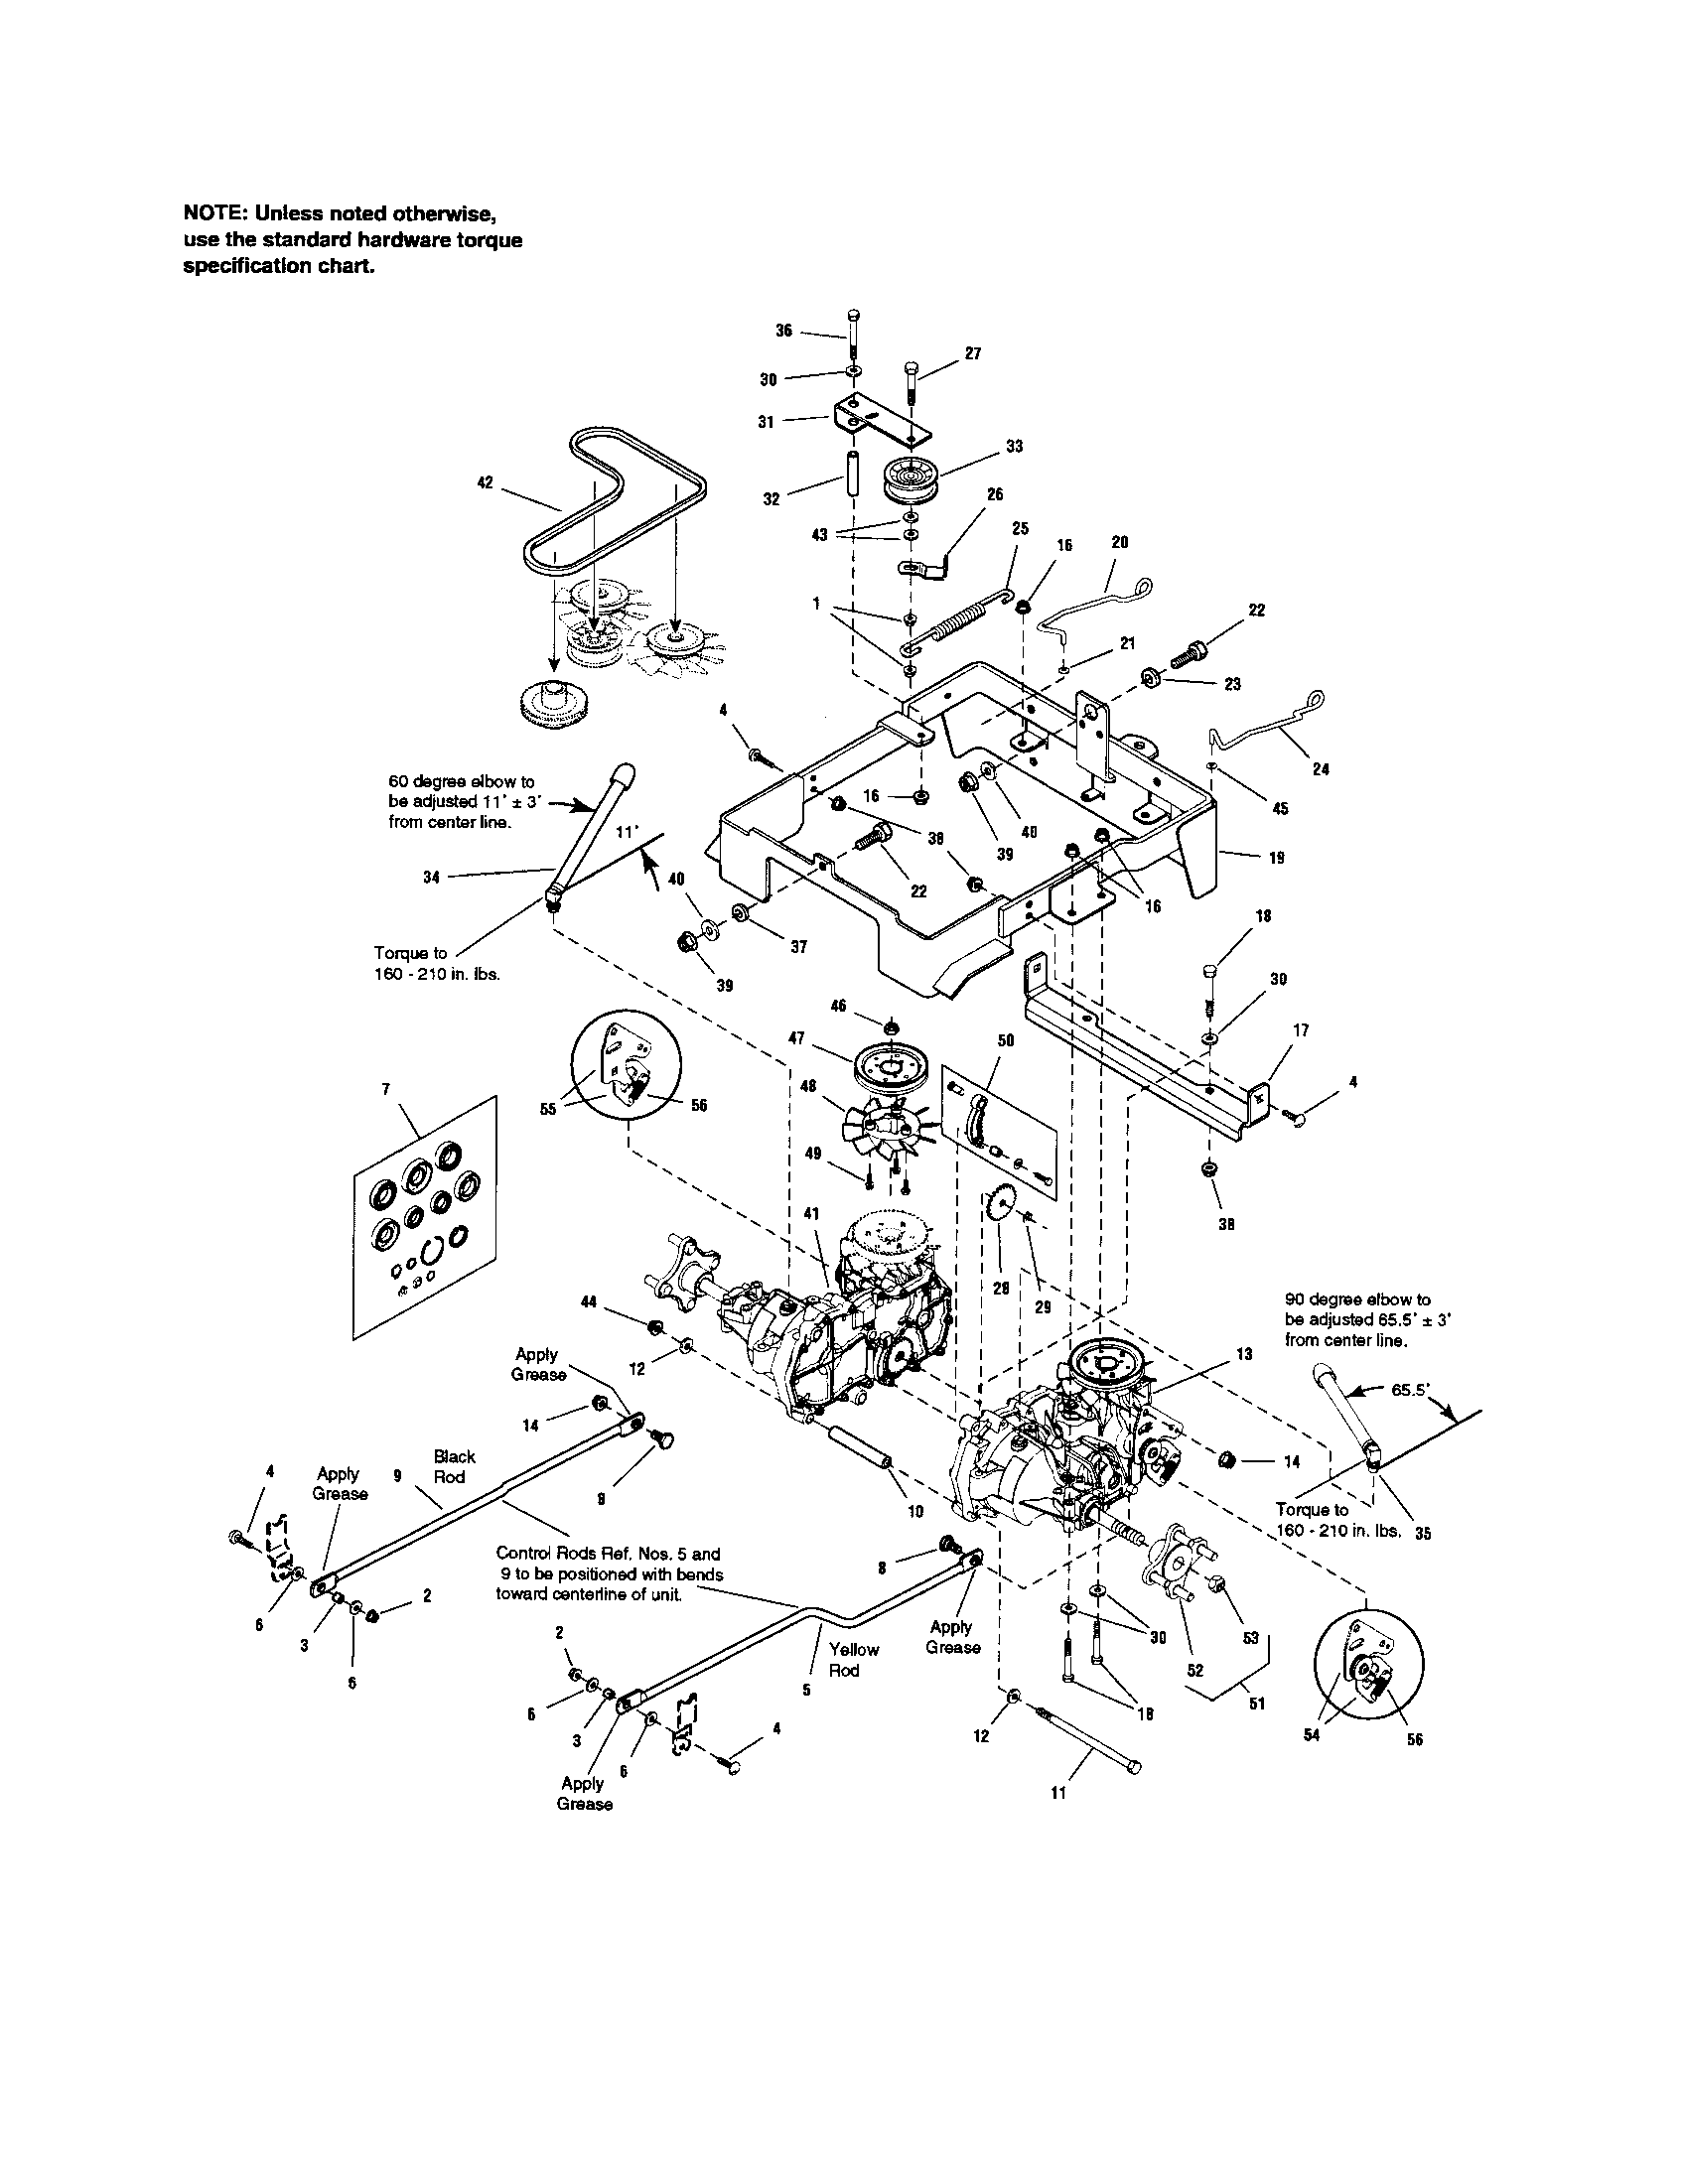 sears-zt-7000-engine-wiring-diagram-9  Hp Briggs And Stratton Wiring Diagram Free Download on